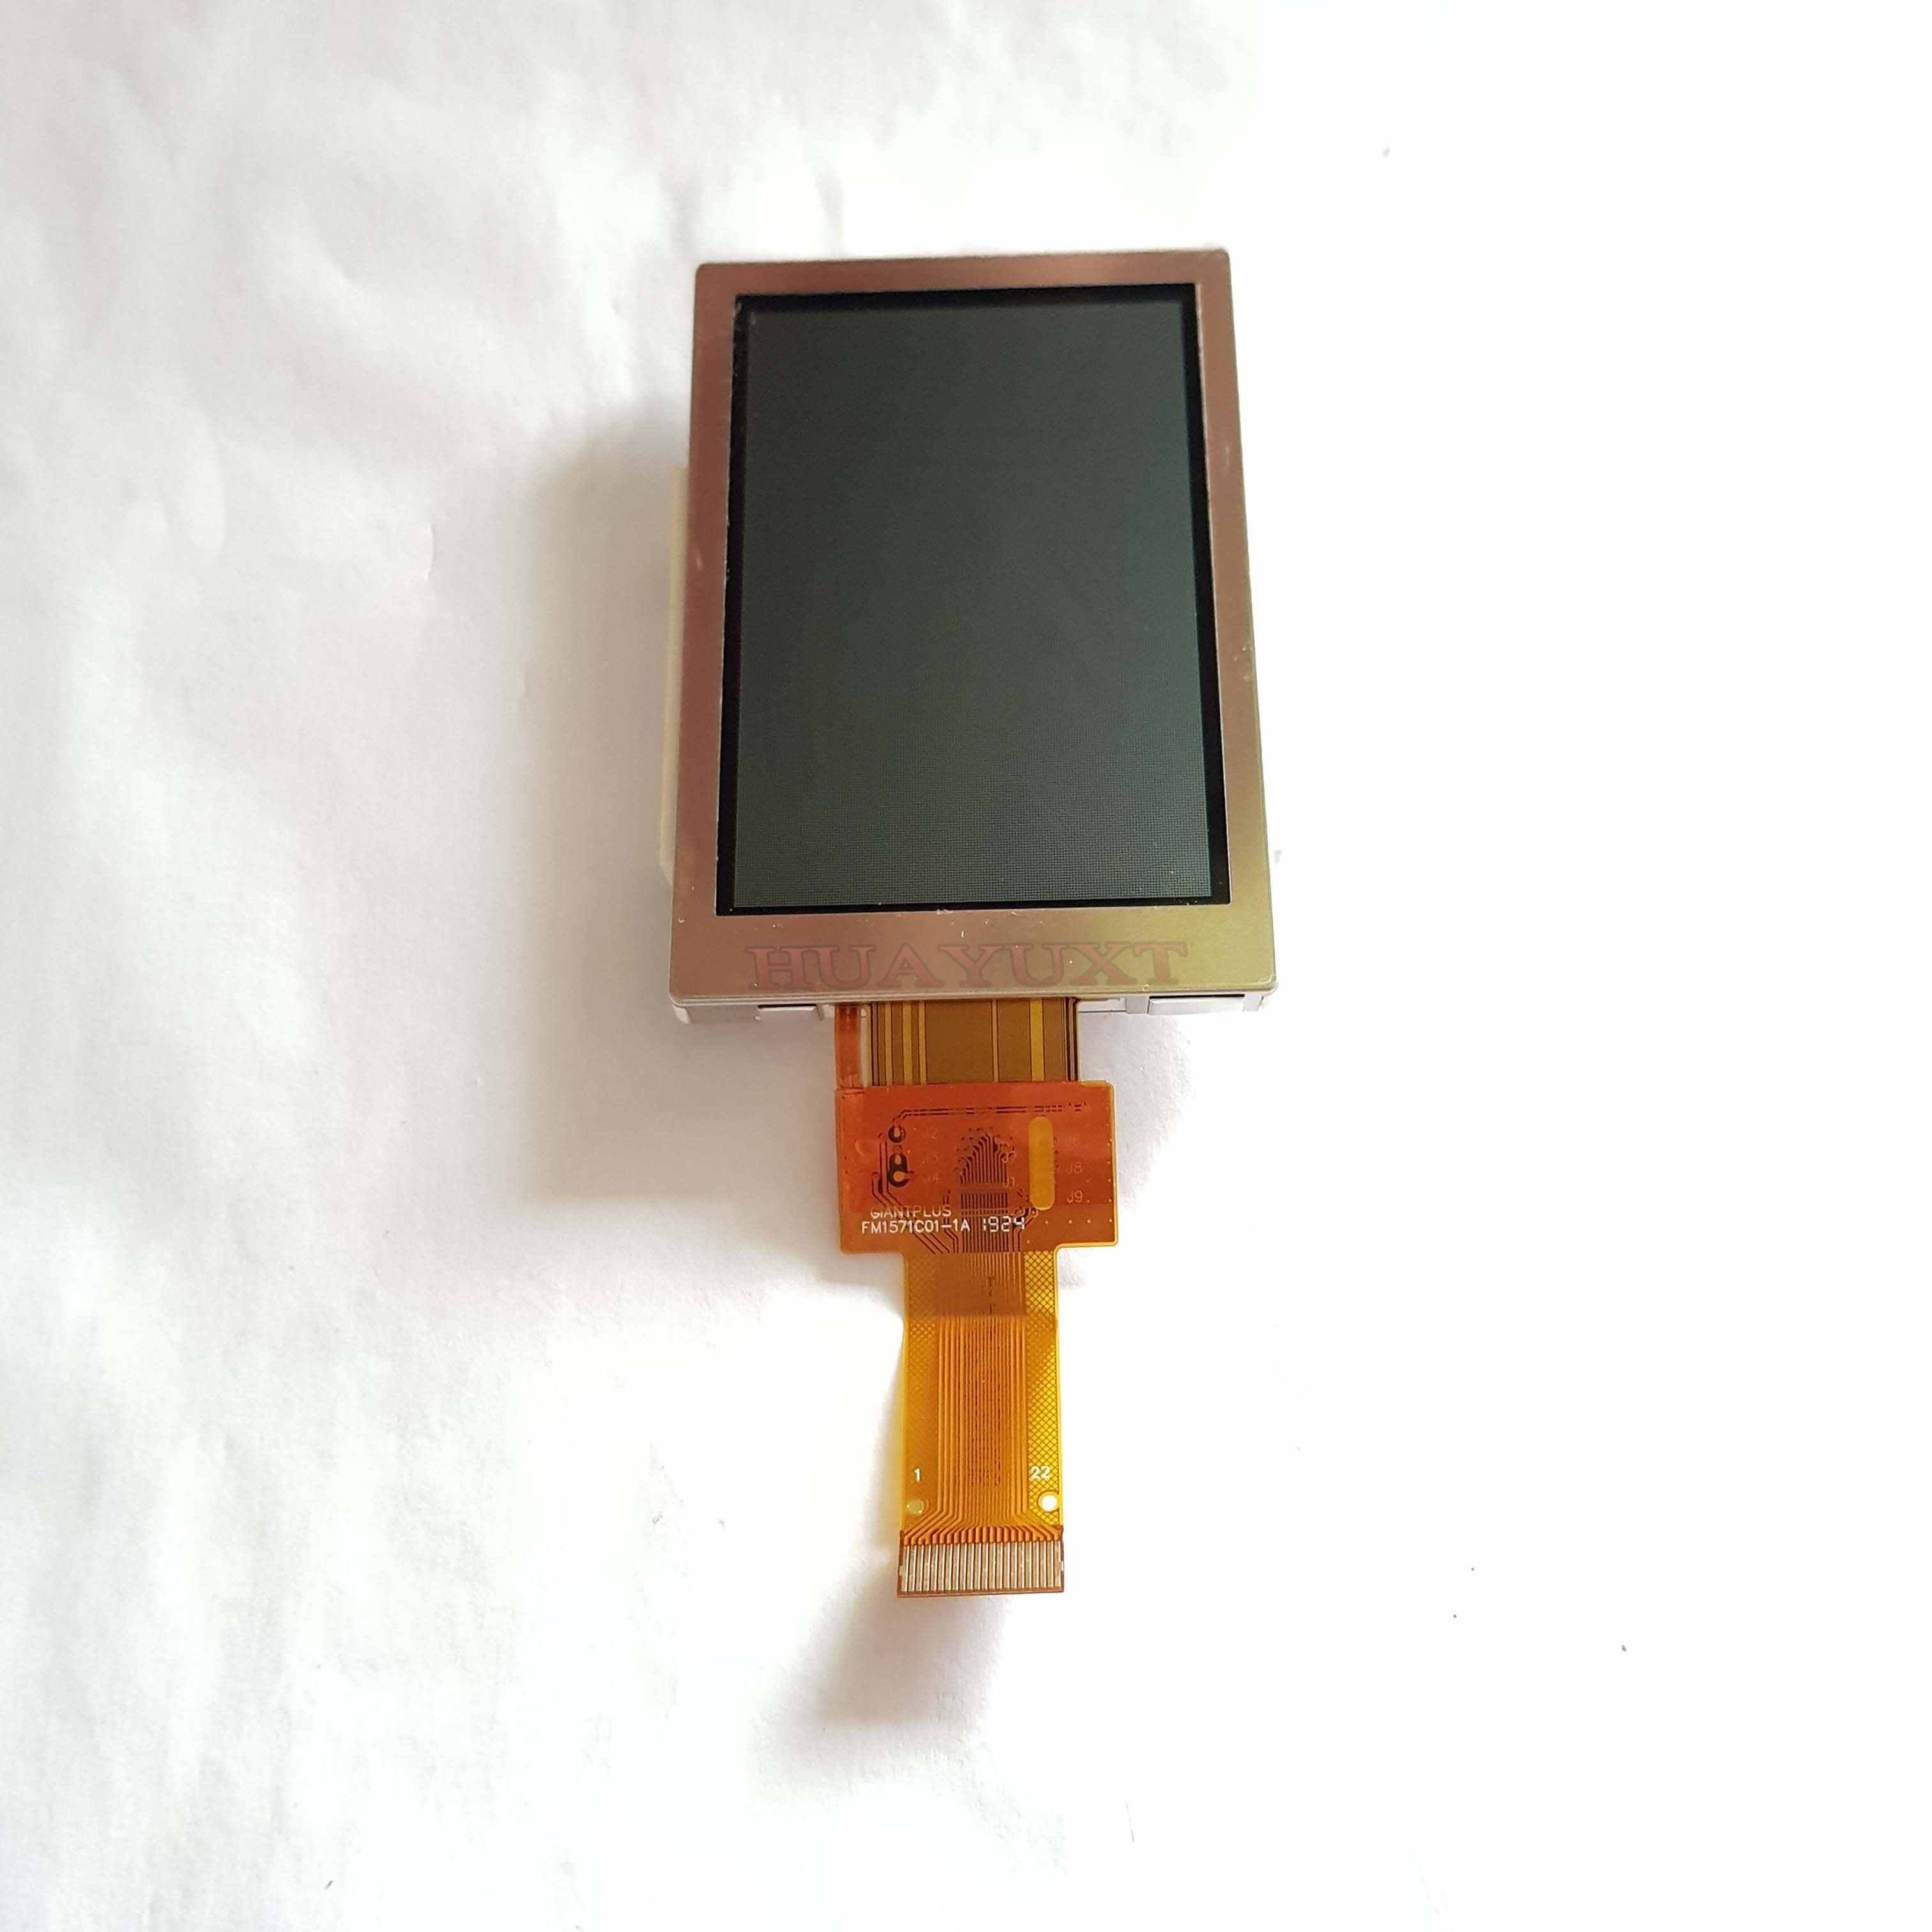 original 3 inch lcd screen for garmin alpha 100 hound tracker handheld gps lcd display screen with touch screen digitizer panel 2.6 LCD screen for GARMIN Alpha 50,Alpha 50 EU Hound tracker Handheld GPS LCD display screen panel Repair replacement